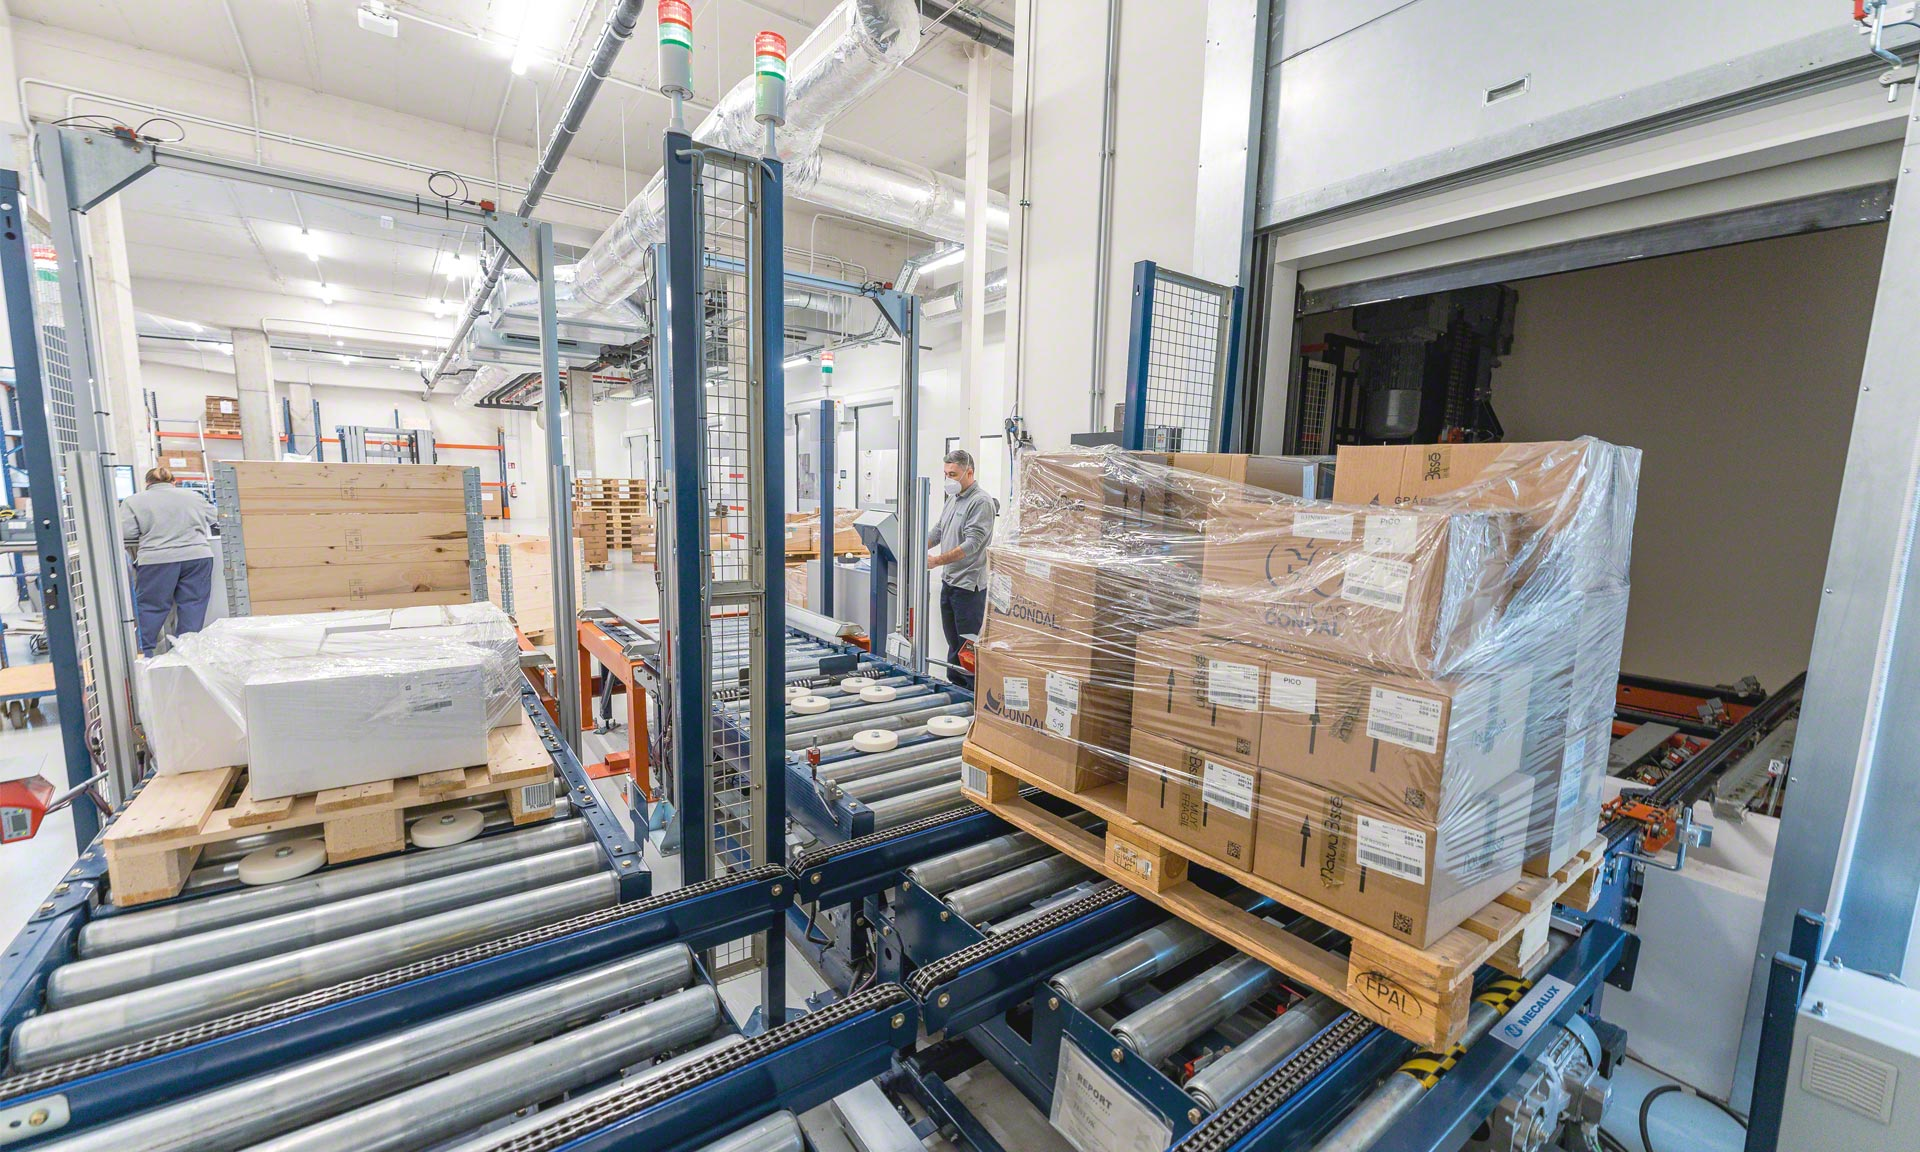 The automated facility manages Natura Bissé's cosmetics products